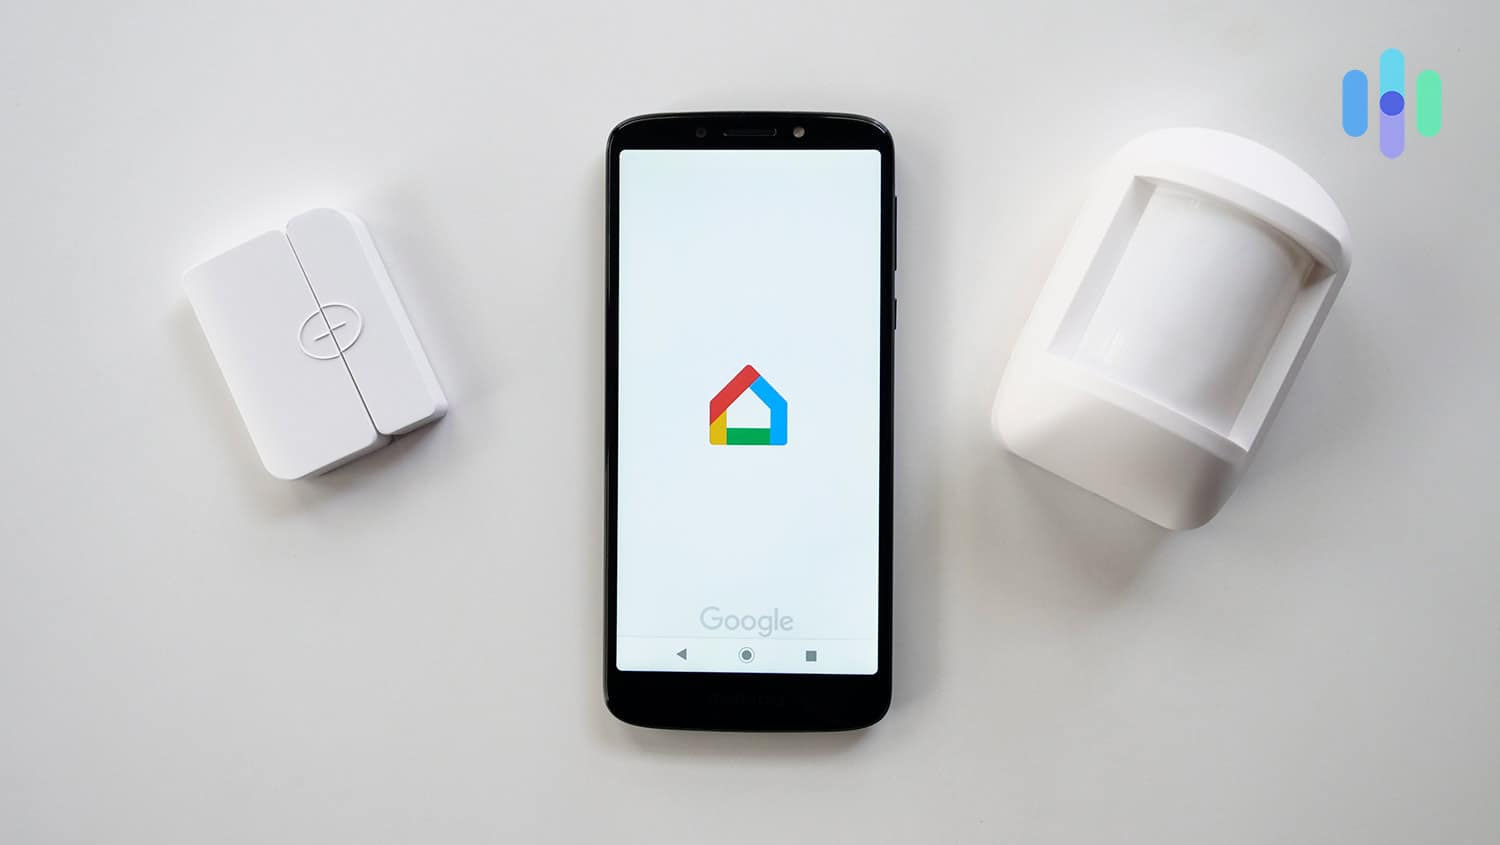 Best for Google Home